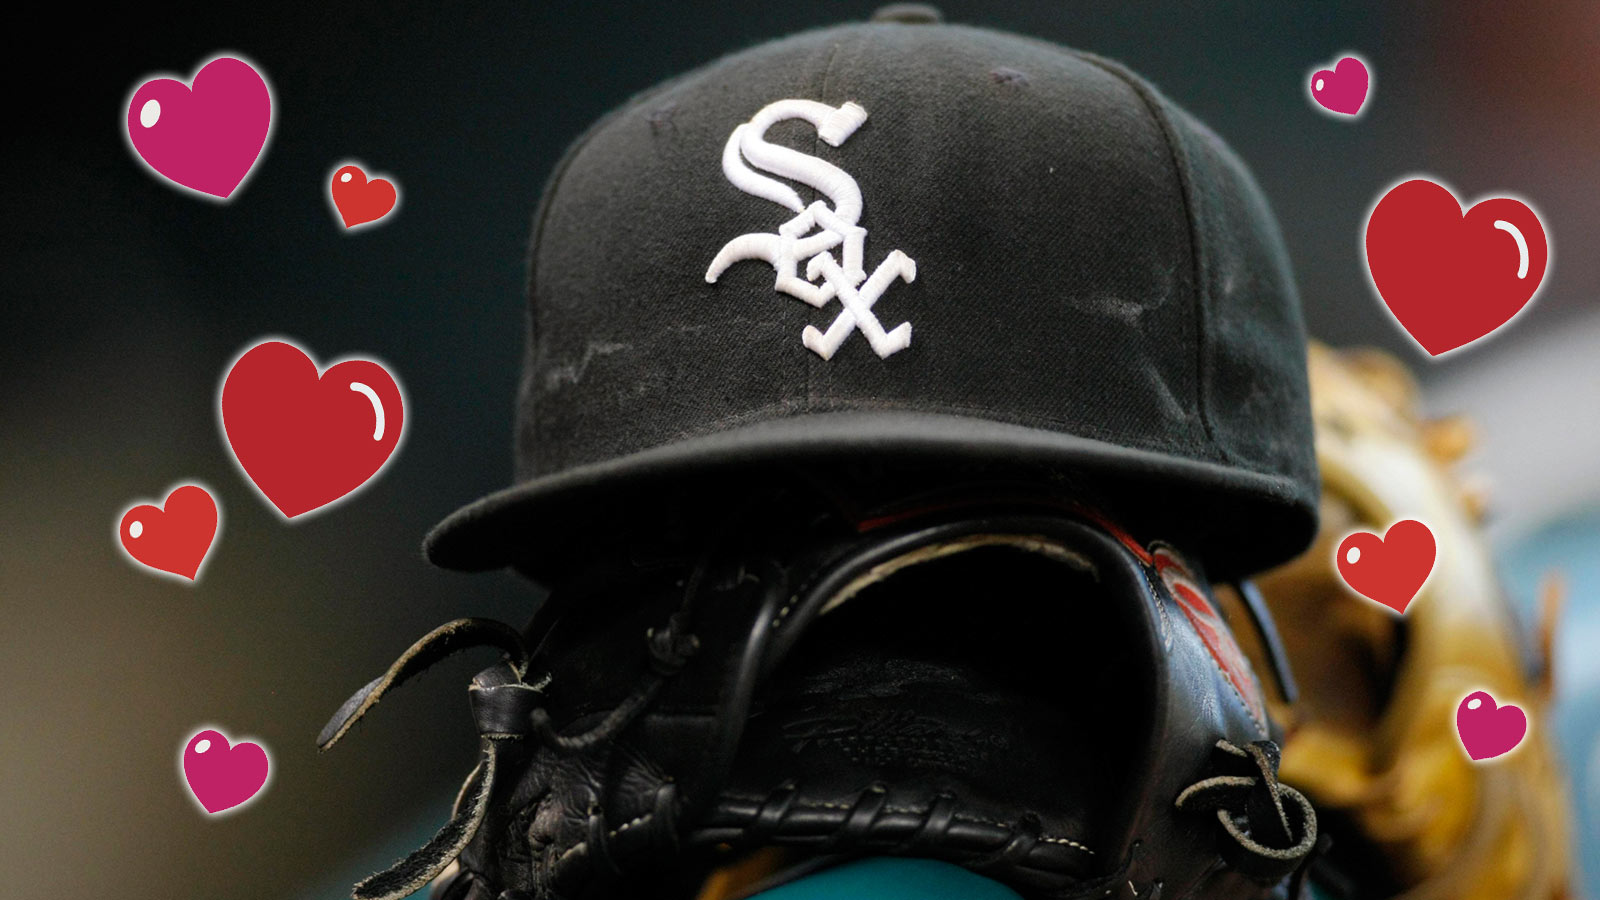 White Sox win Valentine's Day early with pun-heavy player cards